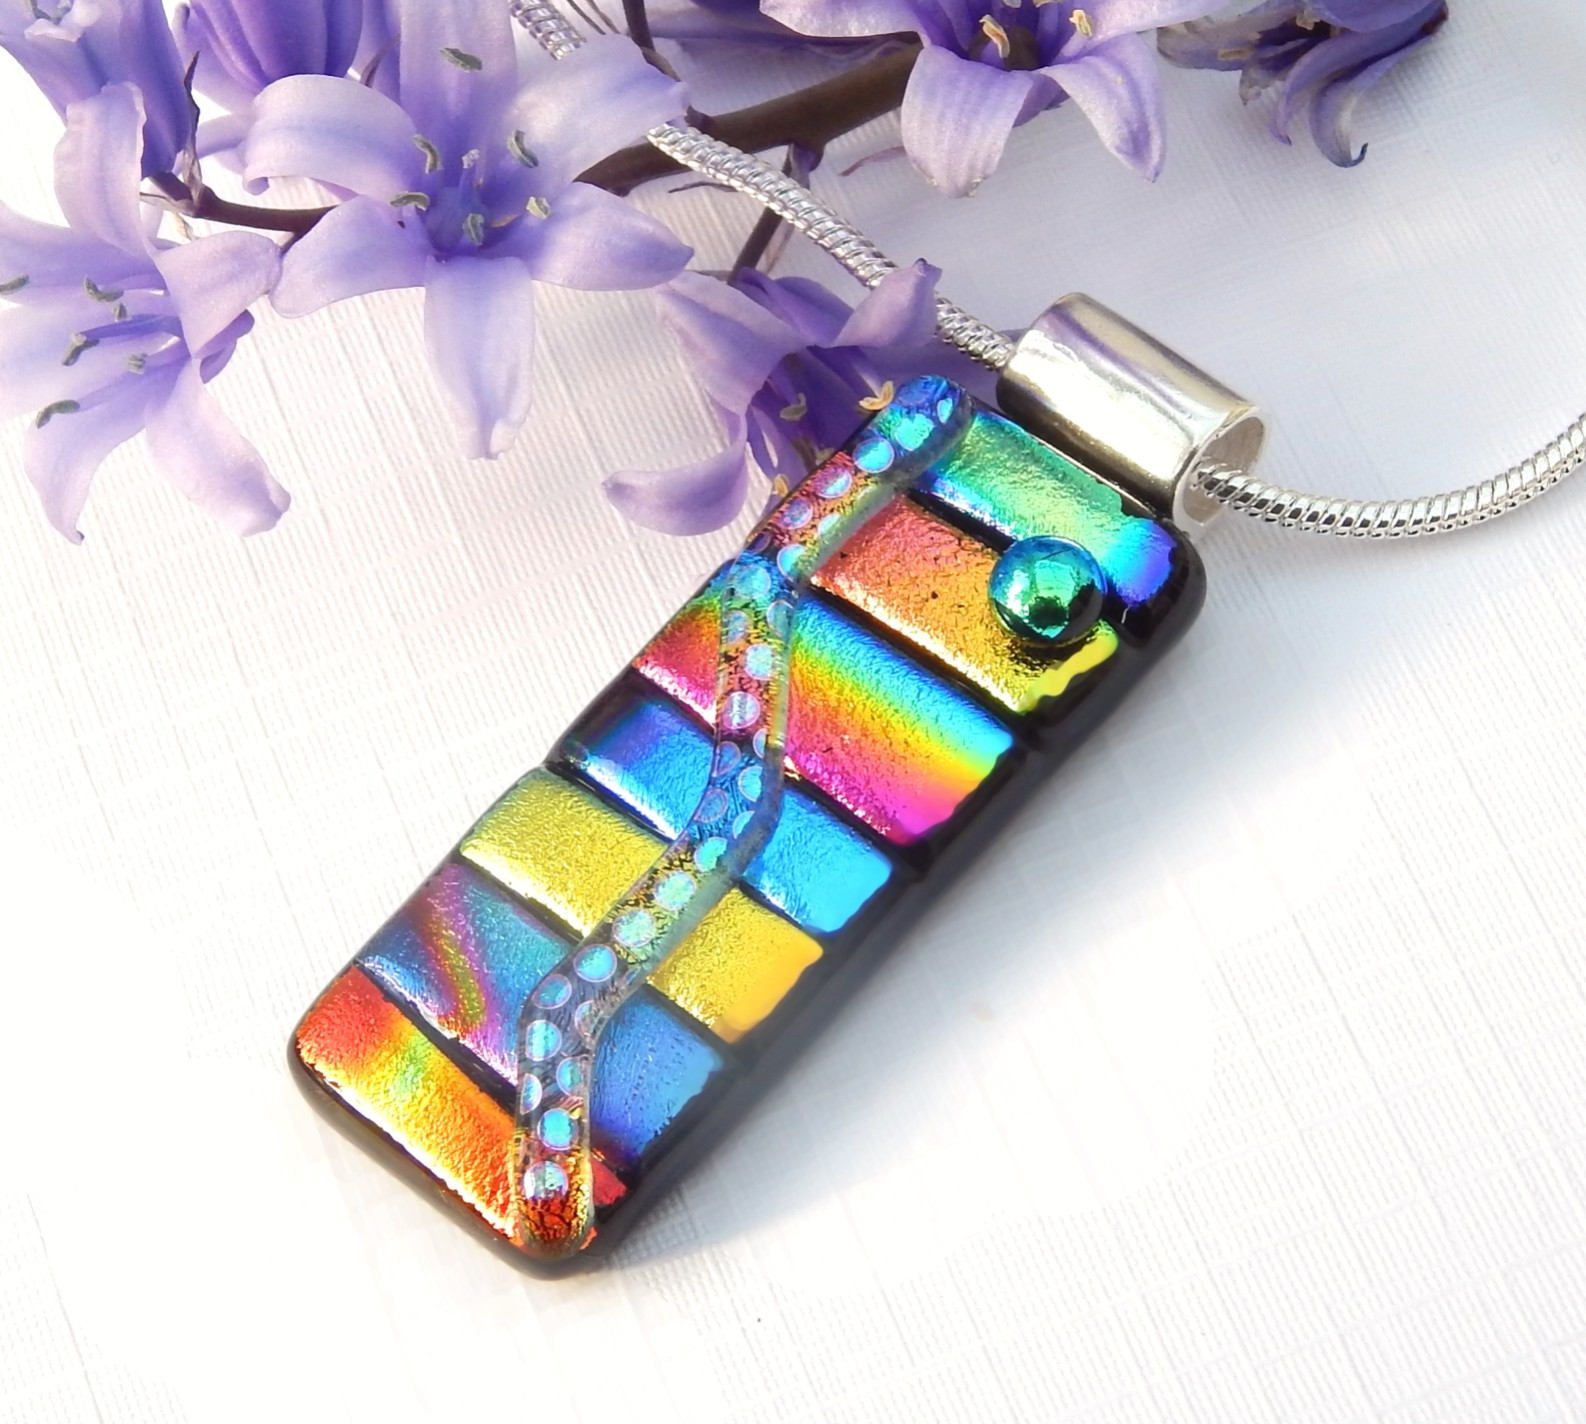 puzzle pendant glass b lynn by the cottage product fgpp fused smythe creative